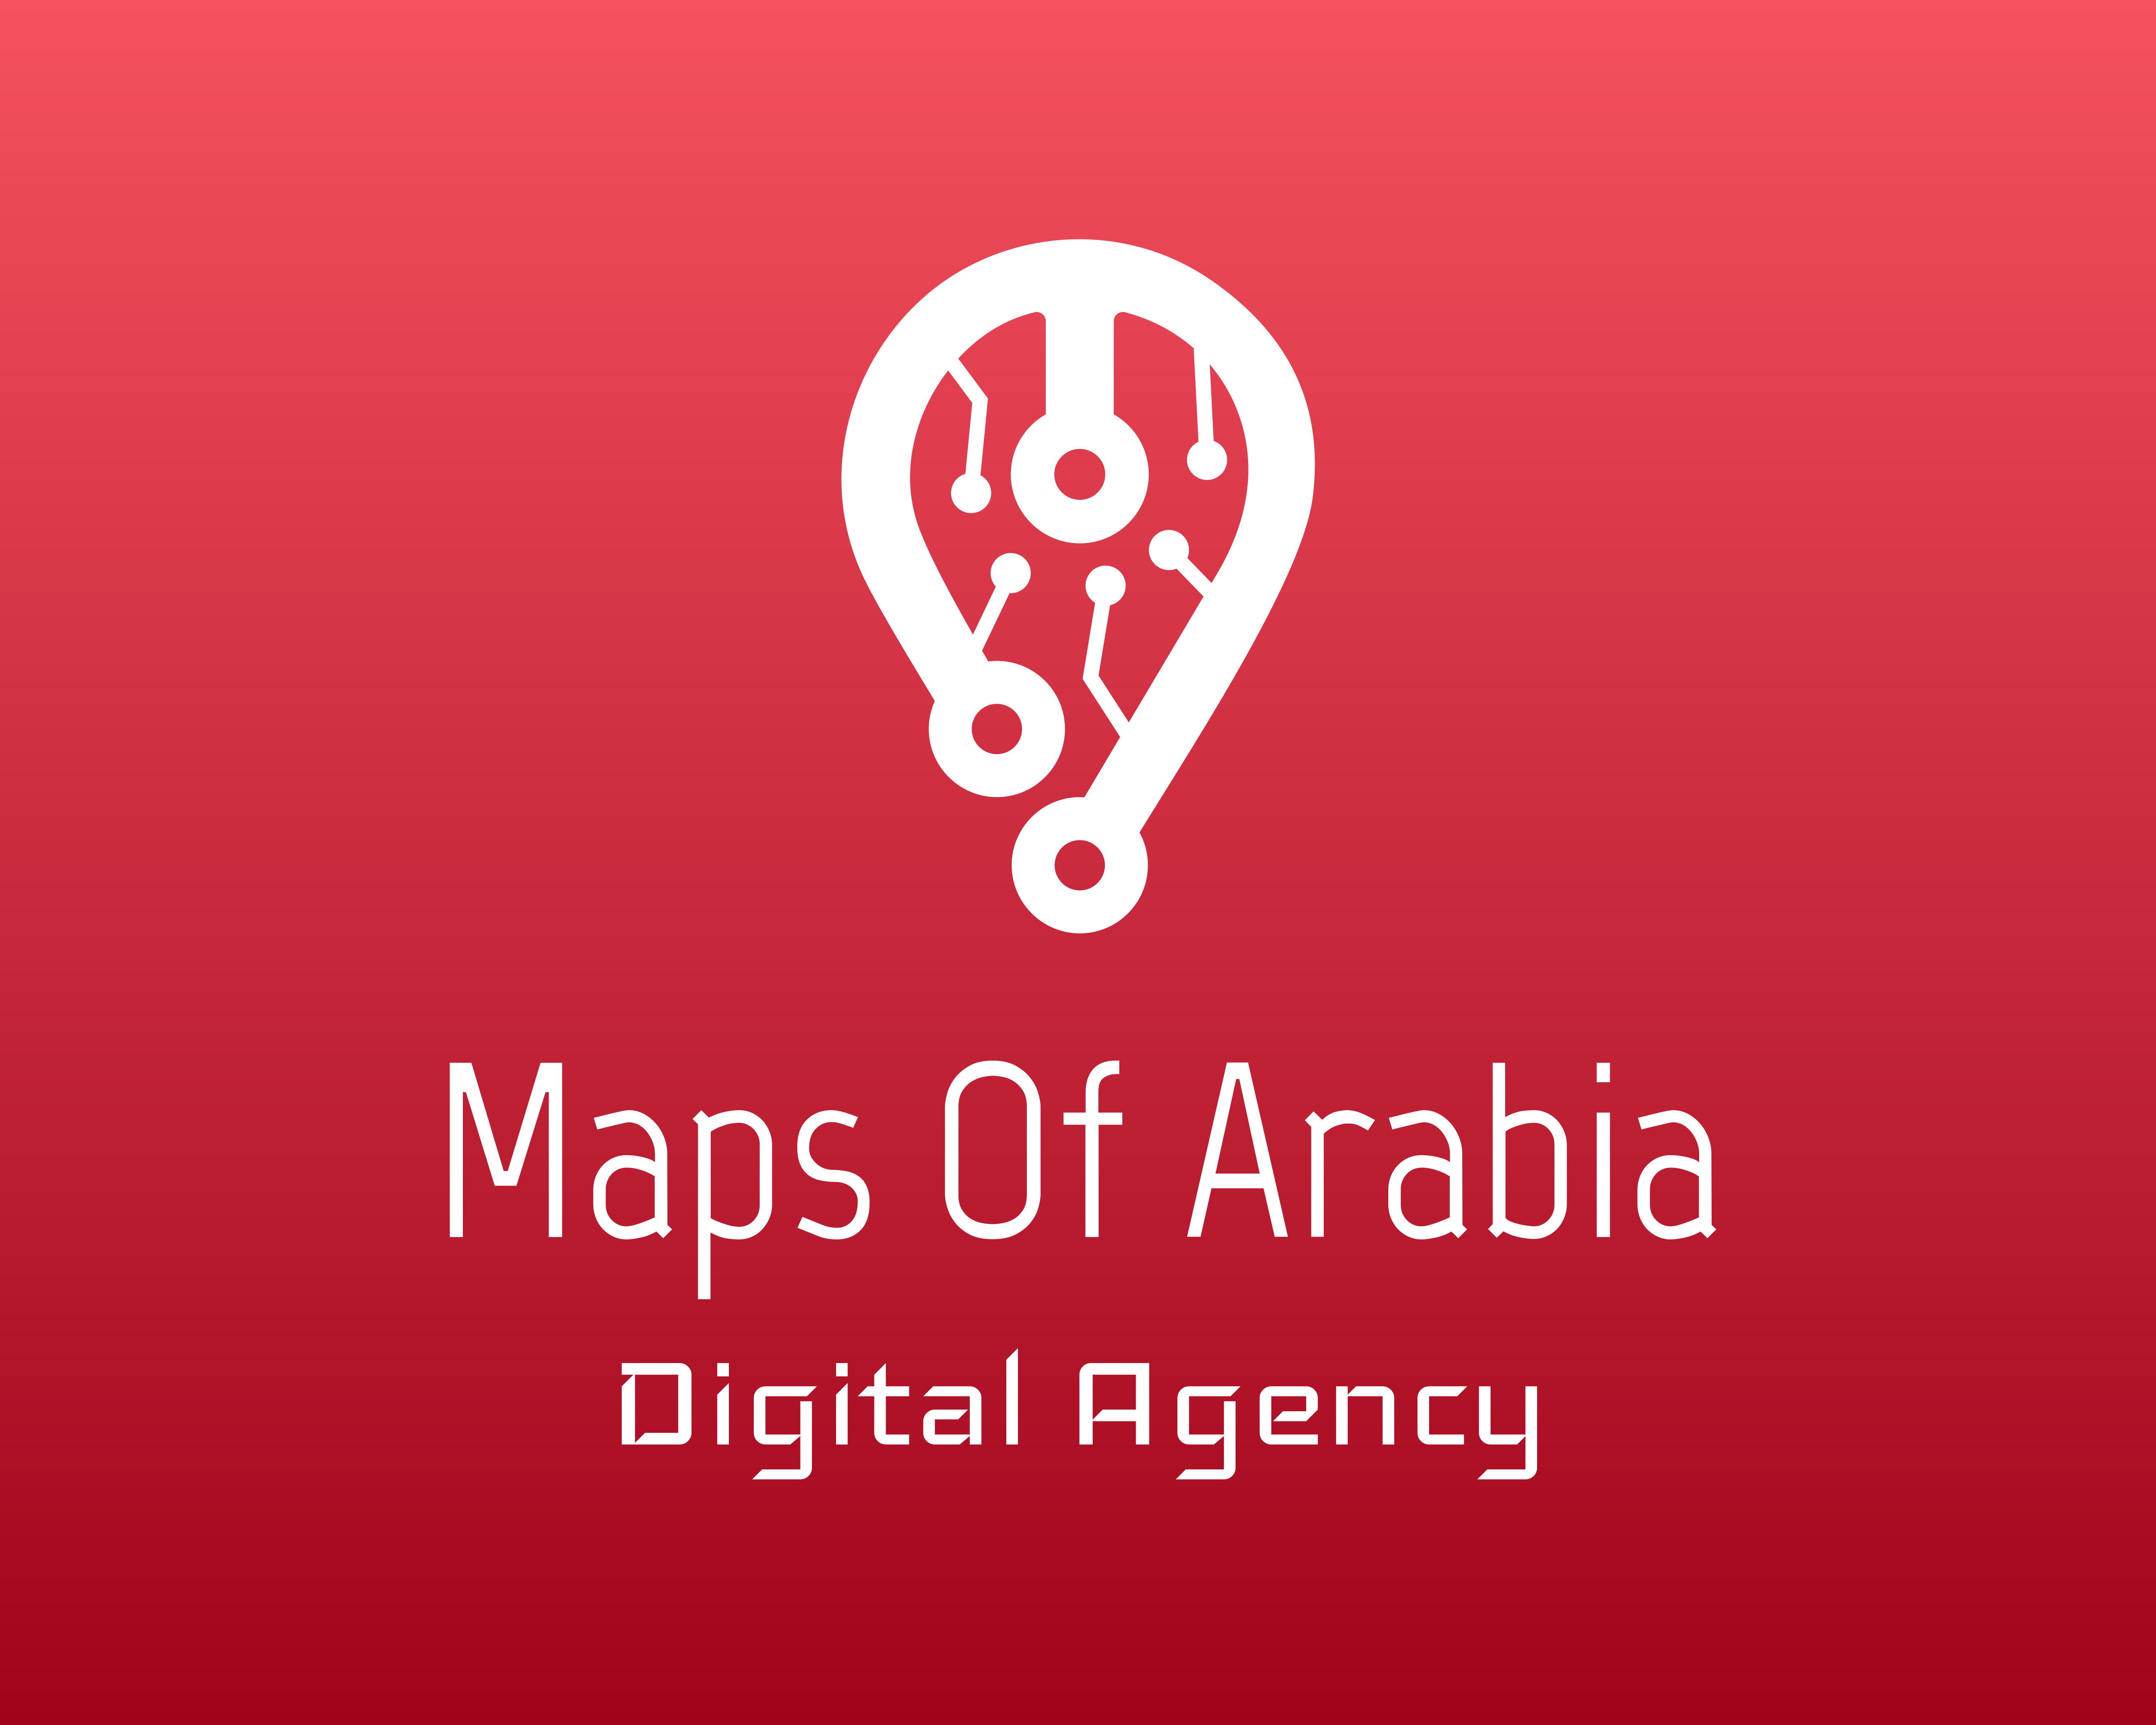 Bilingual Arabic SEO Services Team Applies English SEO Concepts To Arabic Content